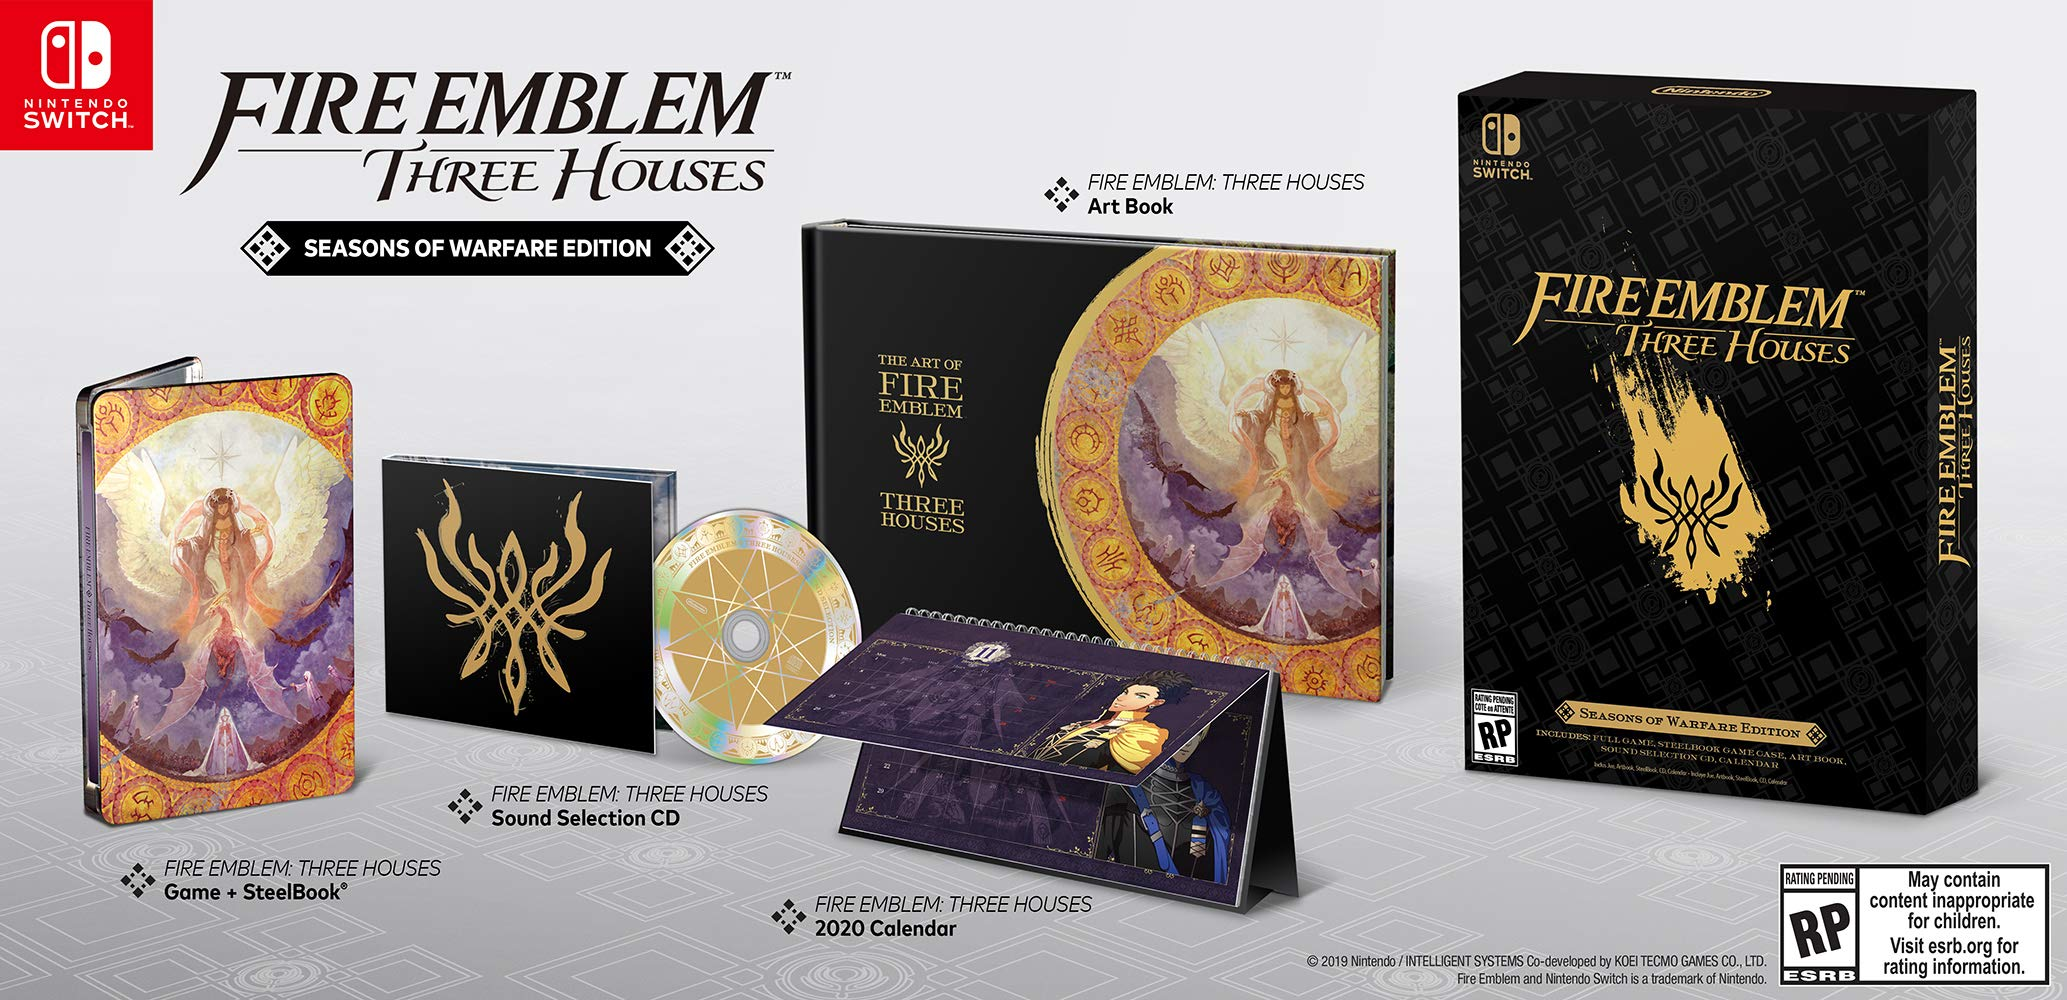 Fire Emblem: Three Houses Seasons of Warfare Edition - Nintendo Switch Seasons of Warfare Edition